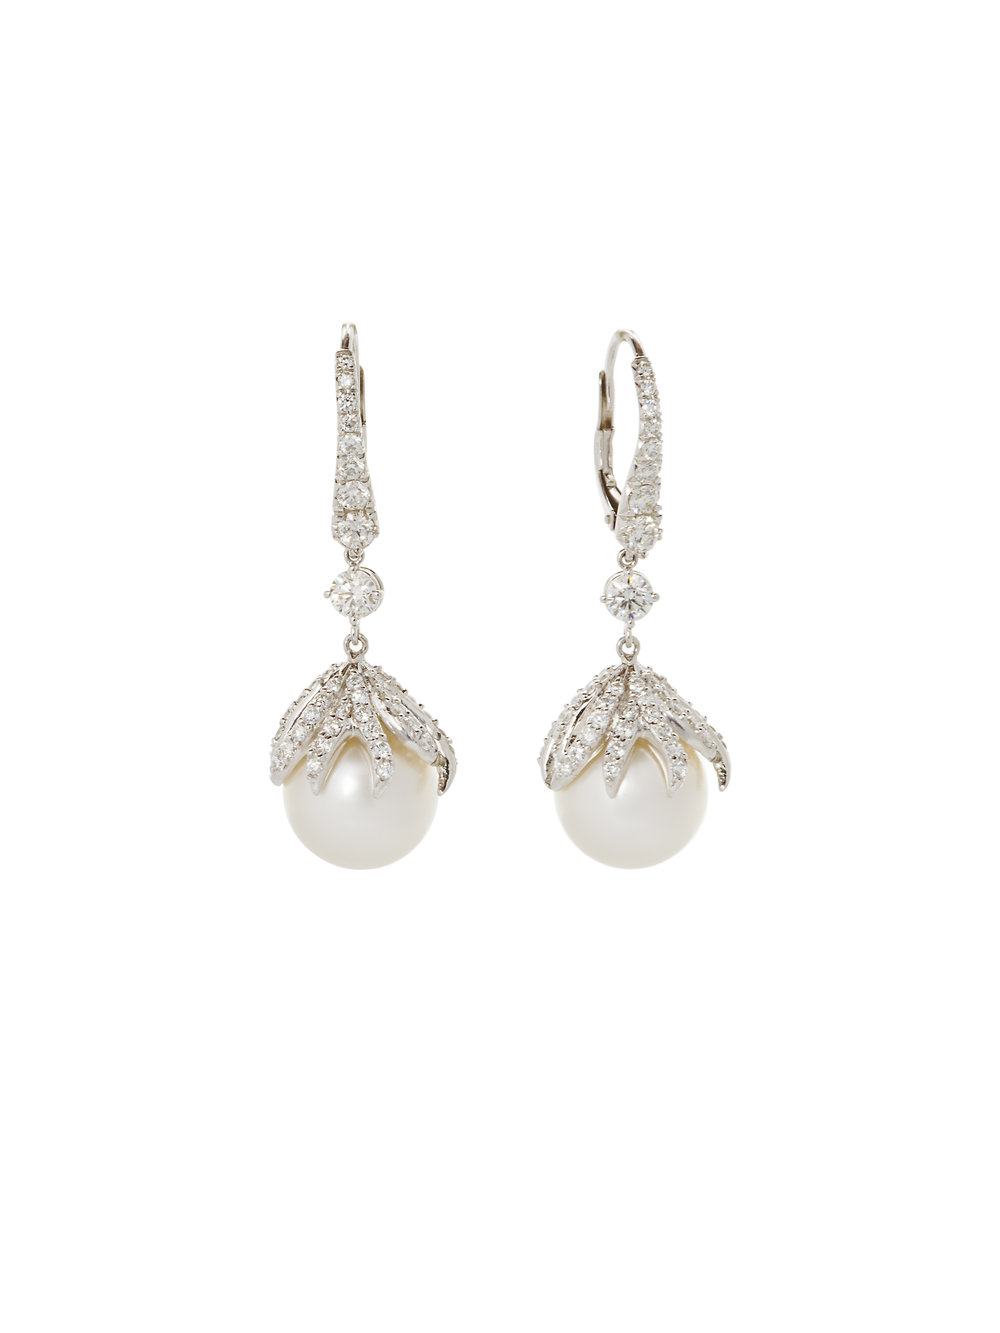 ELVA EARRINGS    18 K GOLD  TAHITIAN PEARLS 2.8 CT OF DIAMONDS      Contact for inquiry